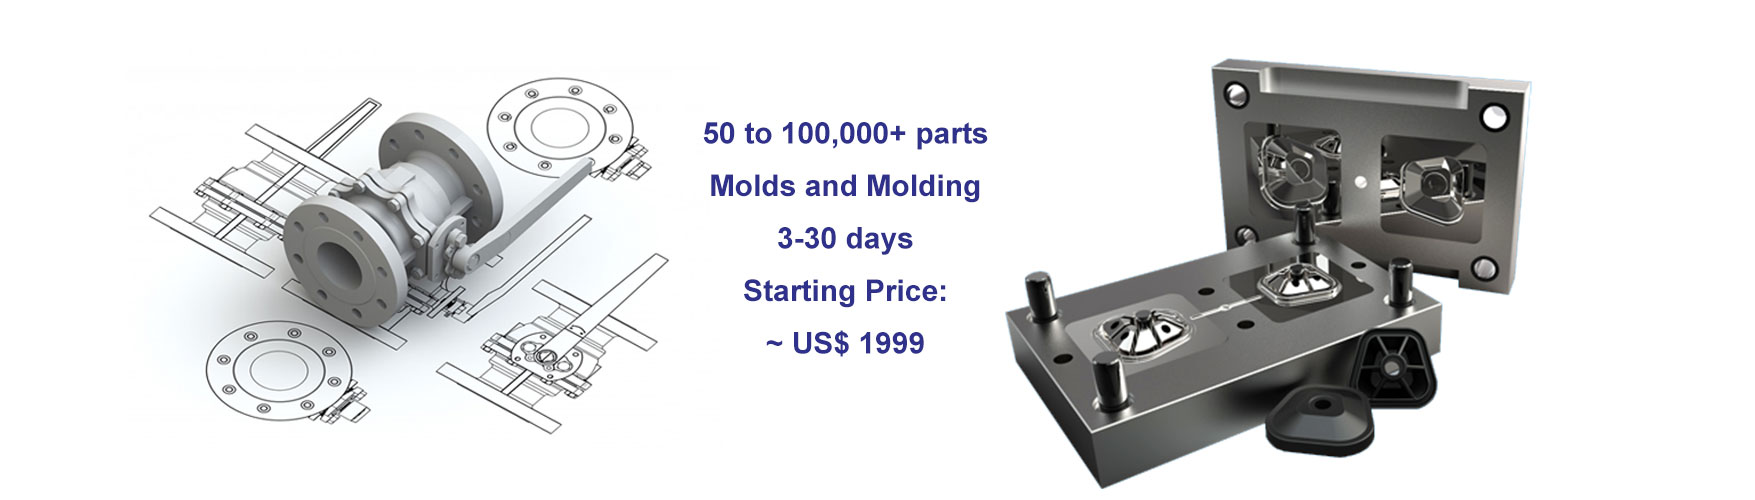 50 to 100,000+ parts Molds and Molding 3-30 days Starting Price: ~ US$ 1999